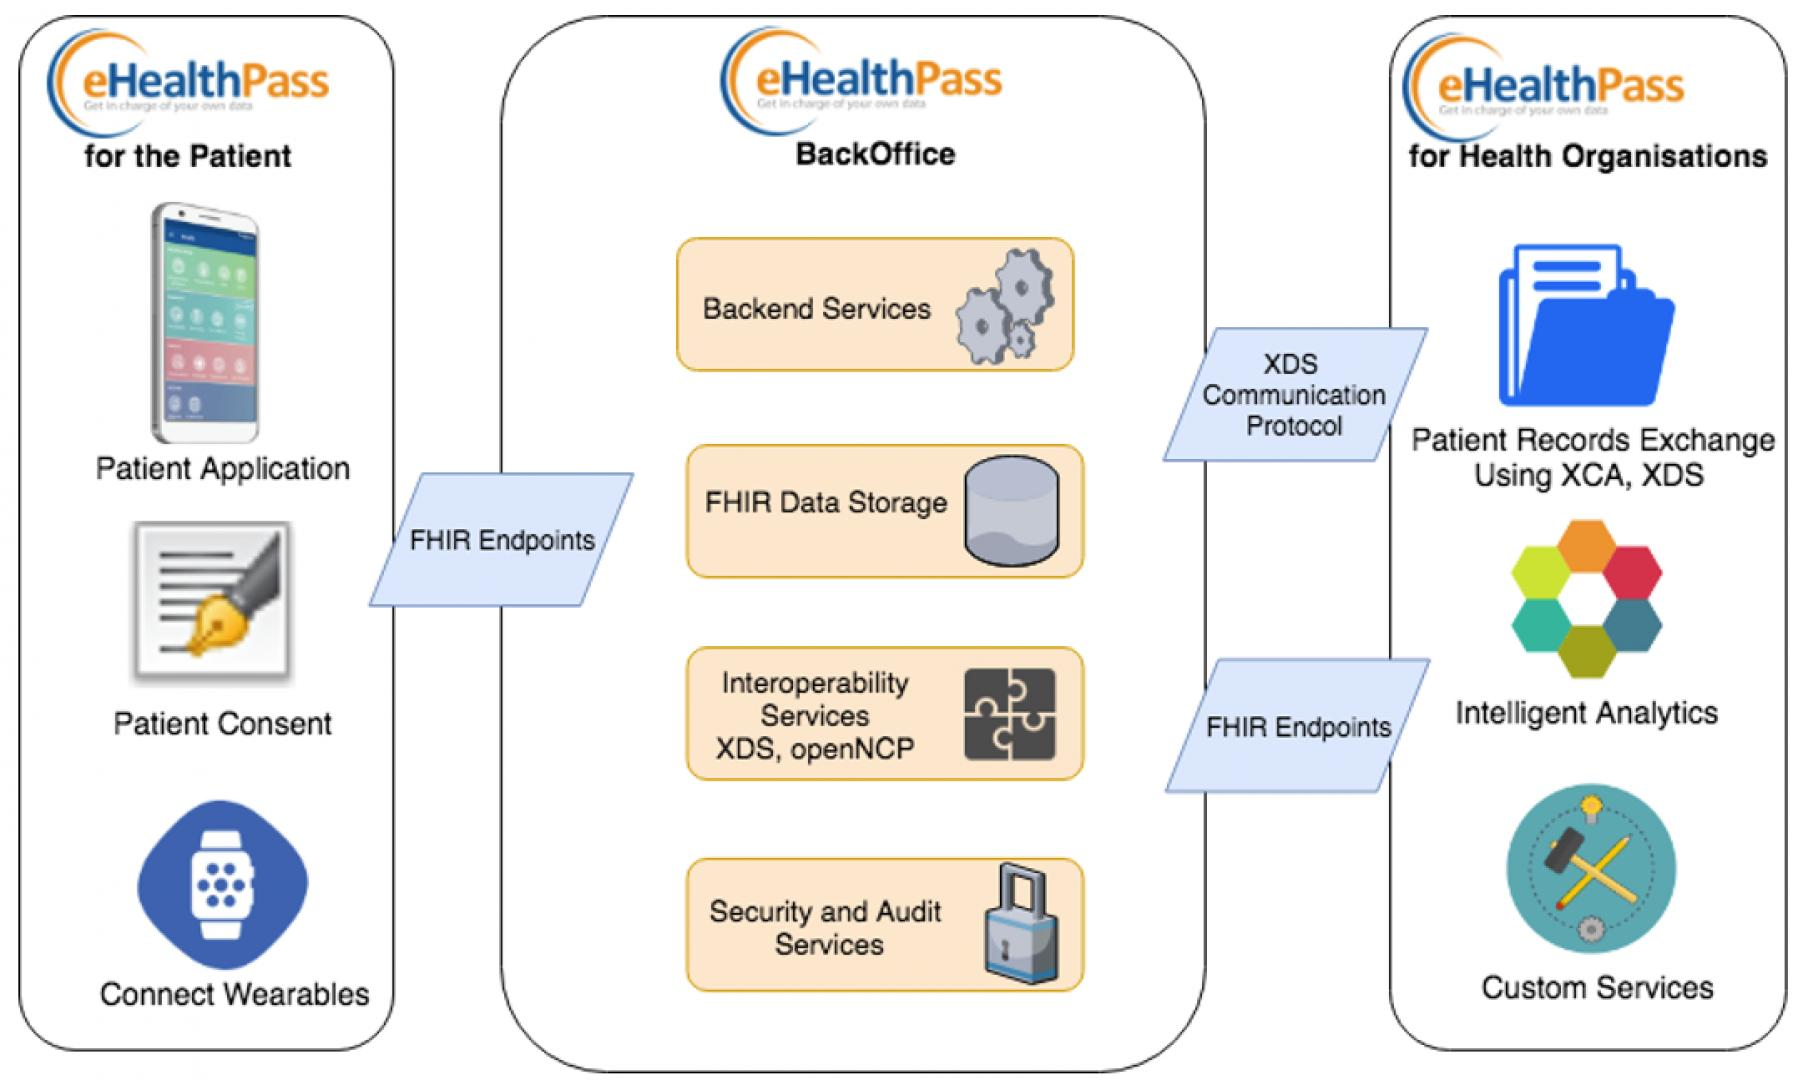 eHealthPass architecture